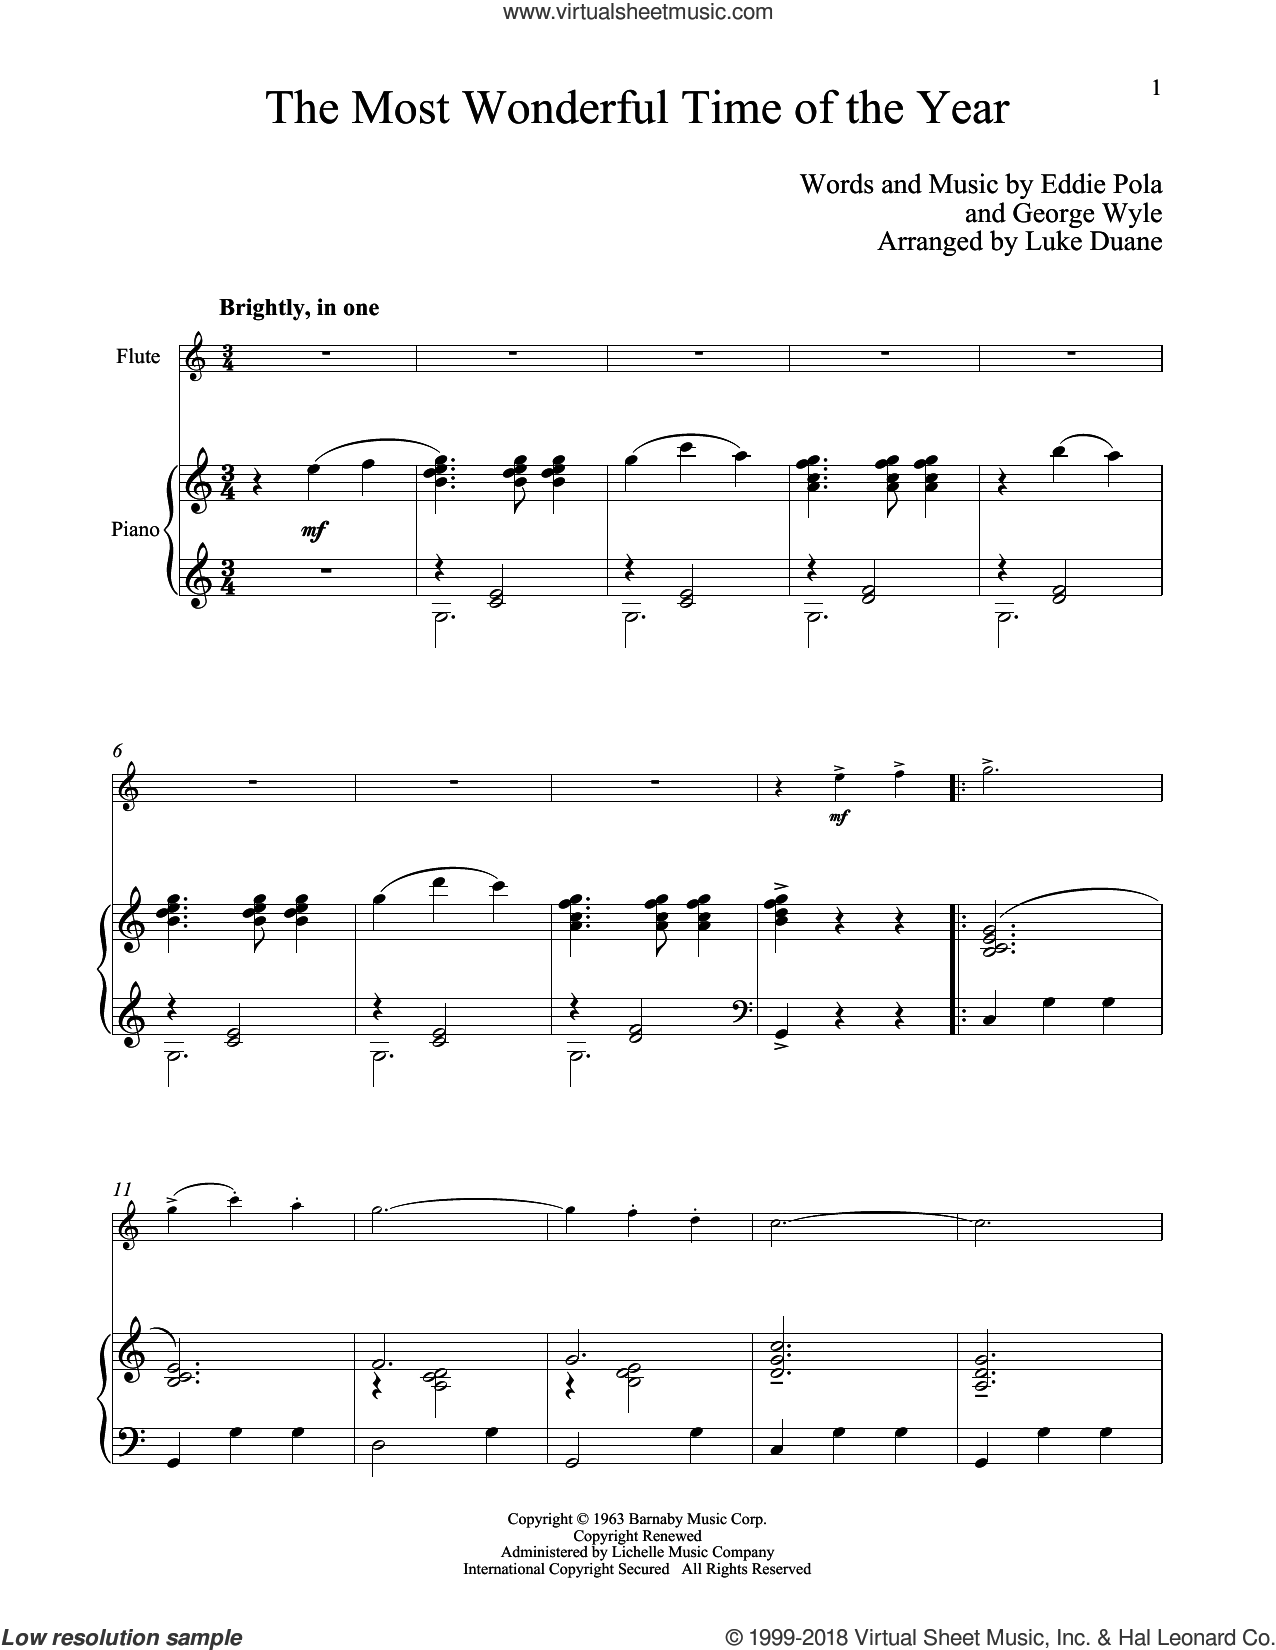 The Most Wonderful Time Of The Year sheet music for flute and piano by George Wyle and Eddie Pola, classical score, intermediate skill level